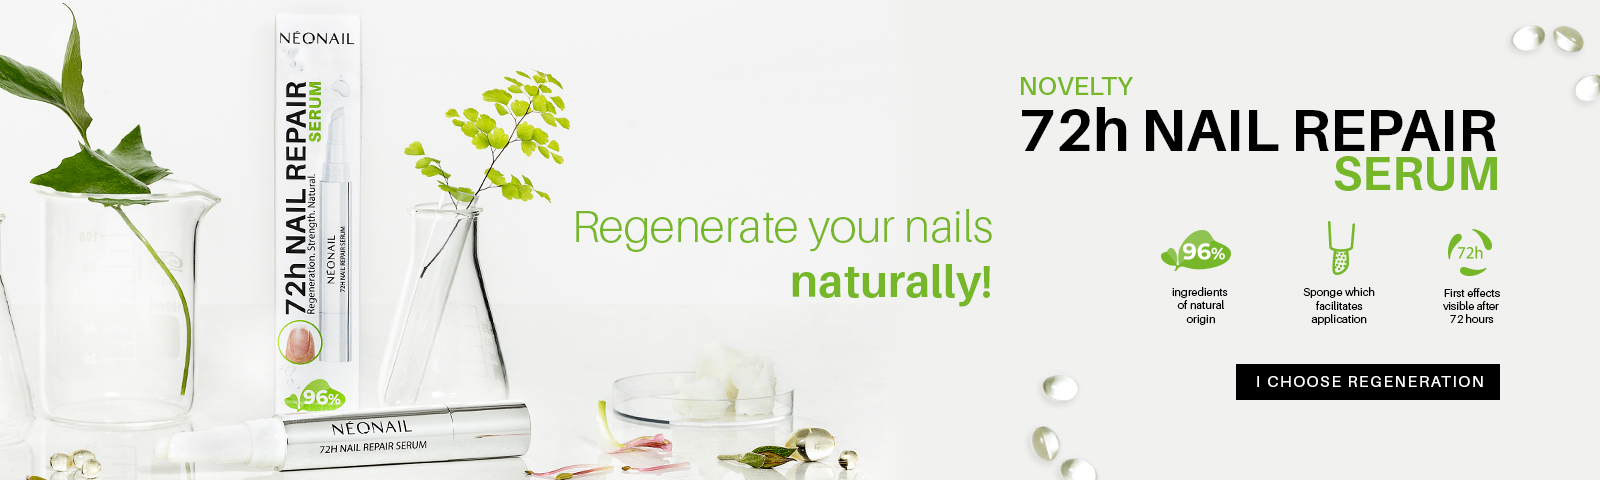 72 nail repair serum Visible effects just after 72 hours!  I choose regeneration